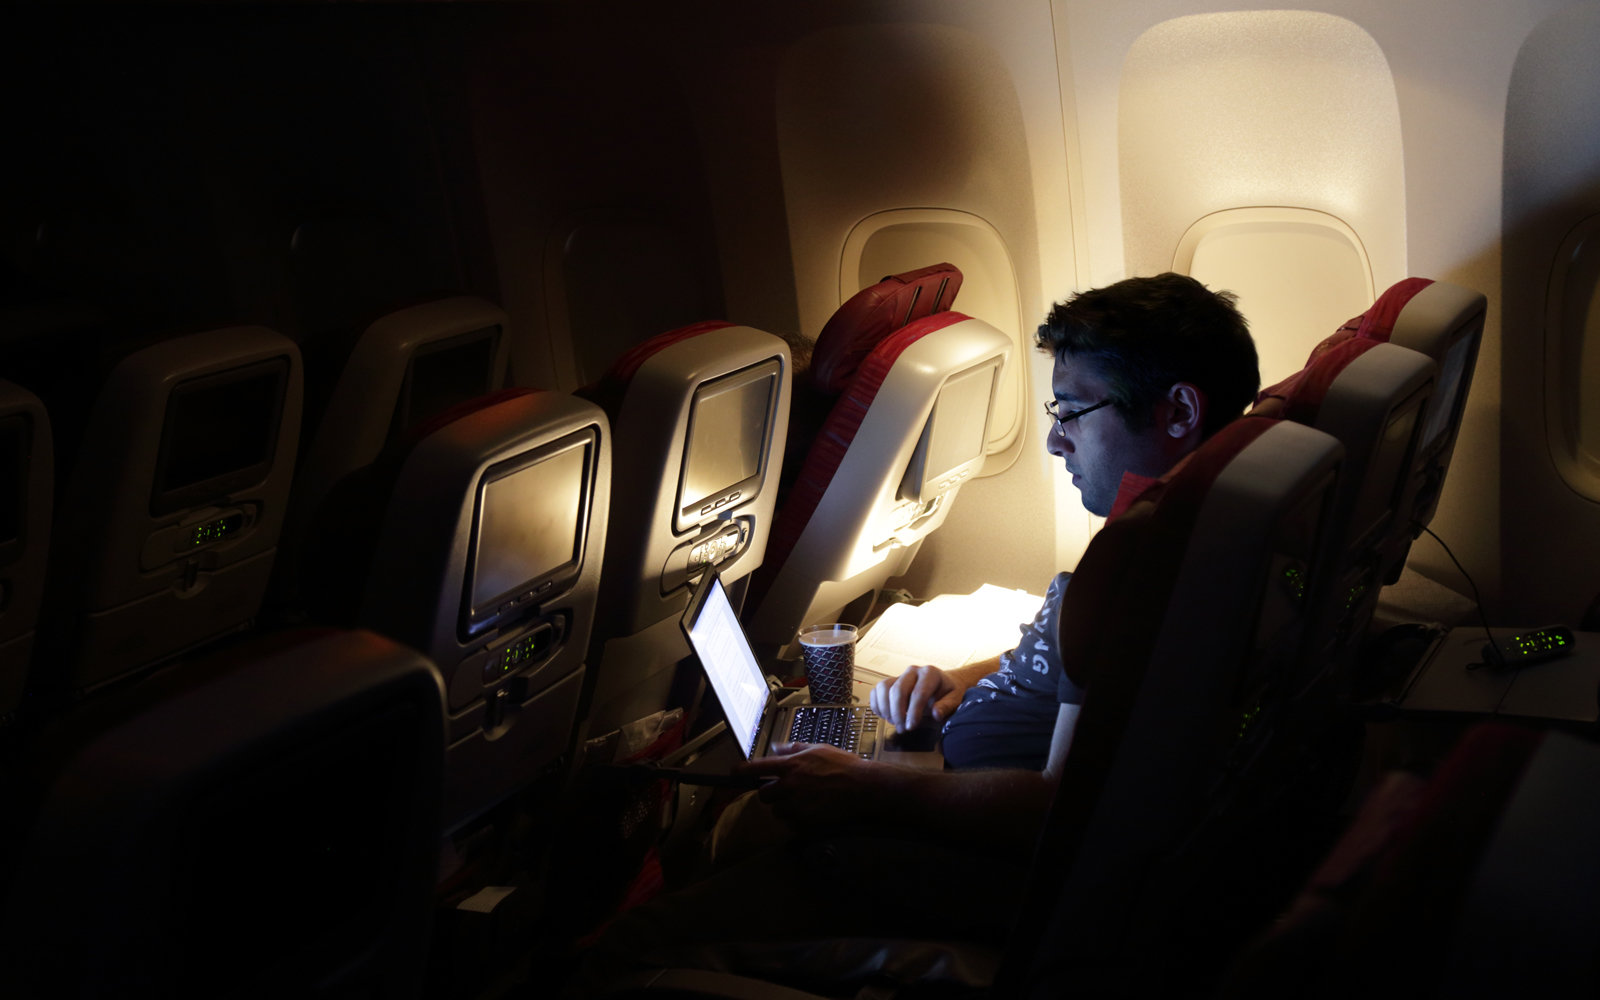 Laptop ban on planes.